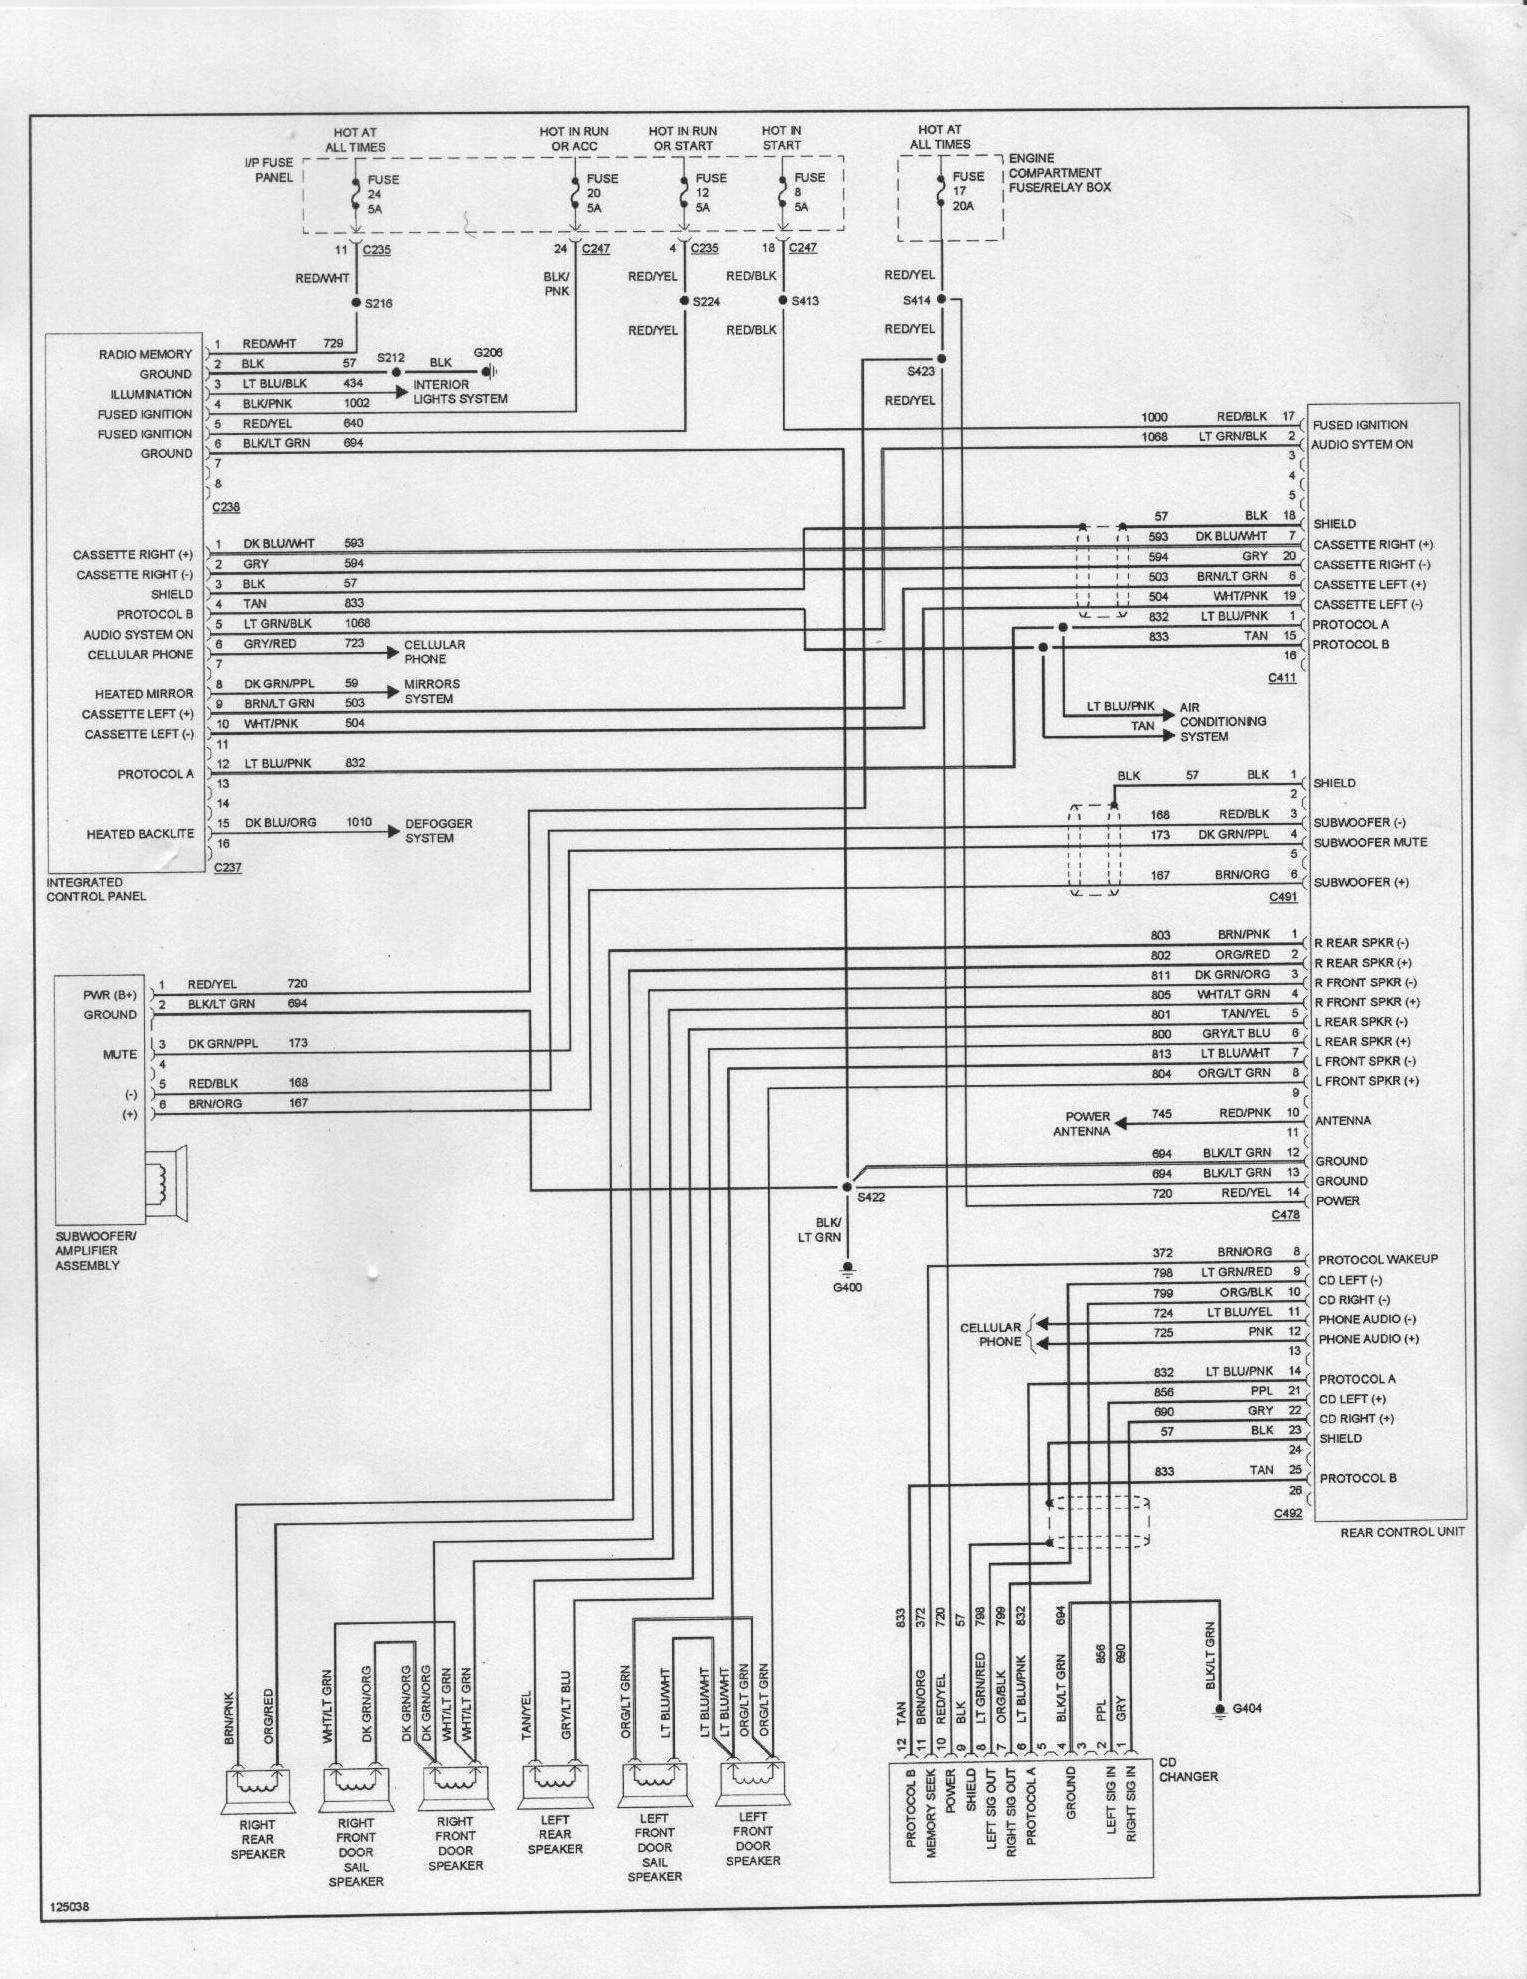 44917d1173064914 wiring diagram ford taurus diagram96 wiring diagram ford taurus taurus car club of america ford wiring diagram for 2007 ford taurus at suagrazia.org